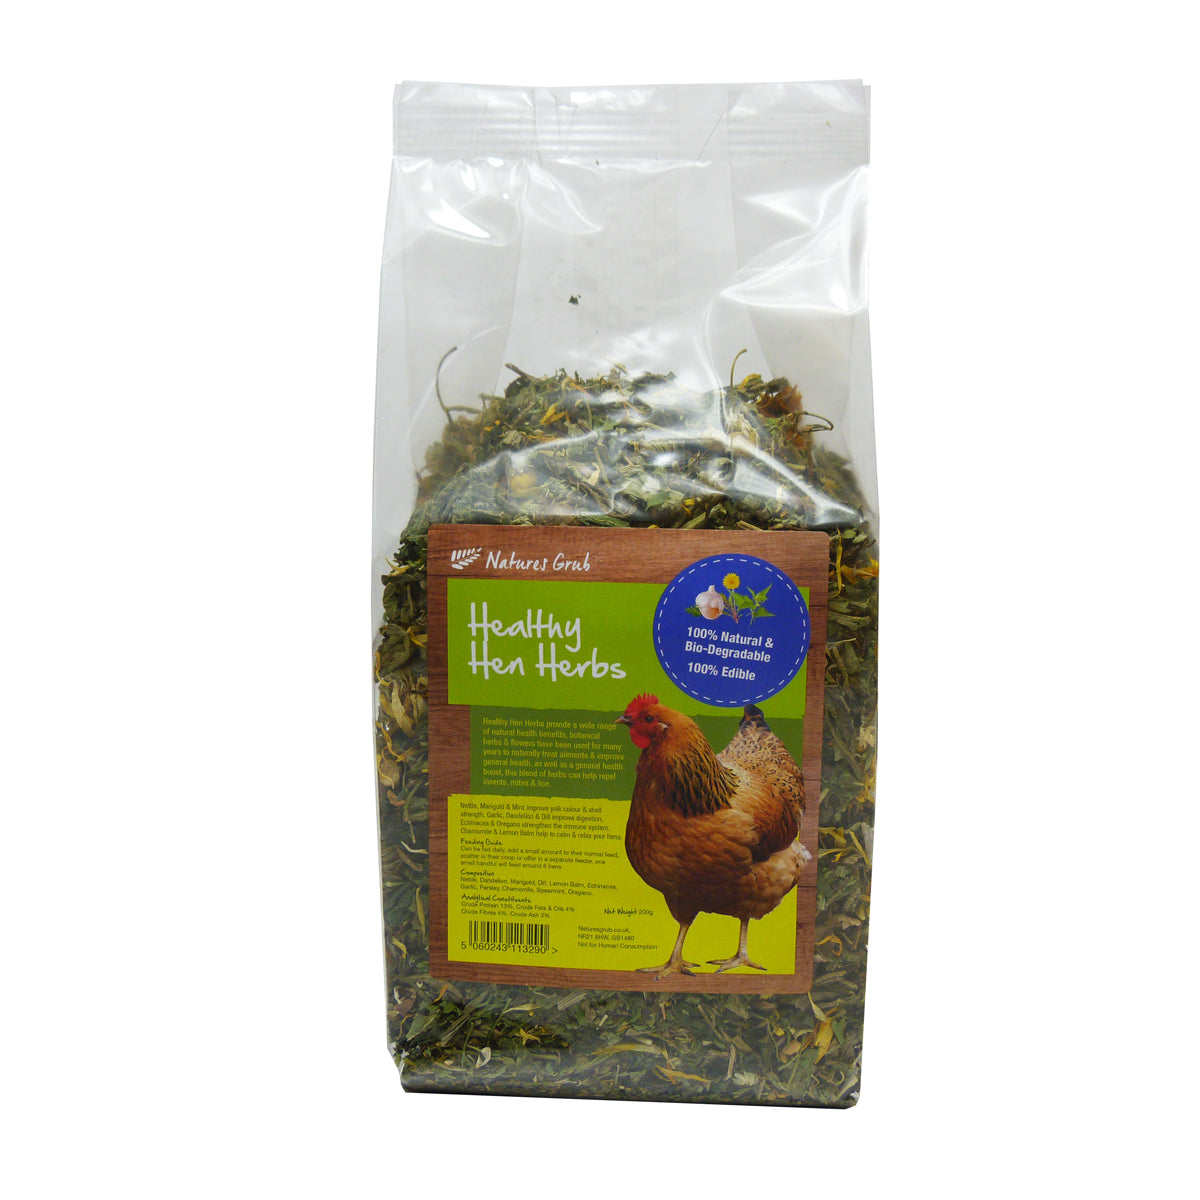 Healthy Hen Herbs by Nature's Grub